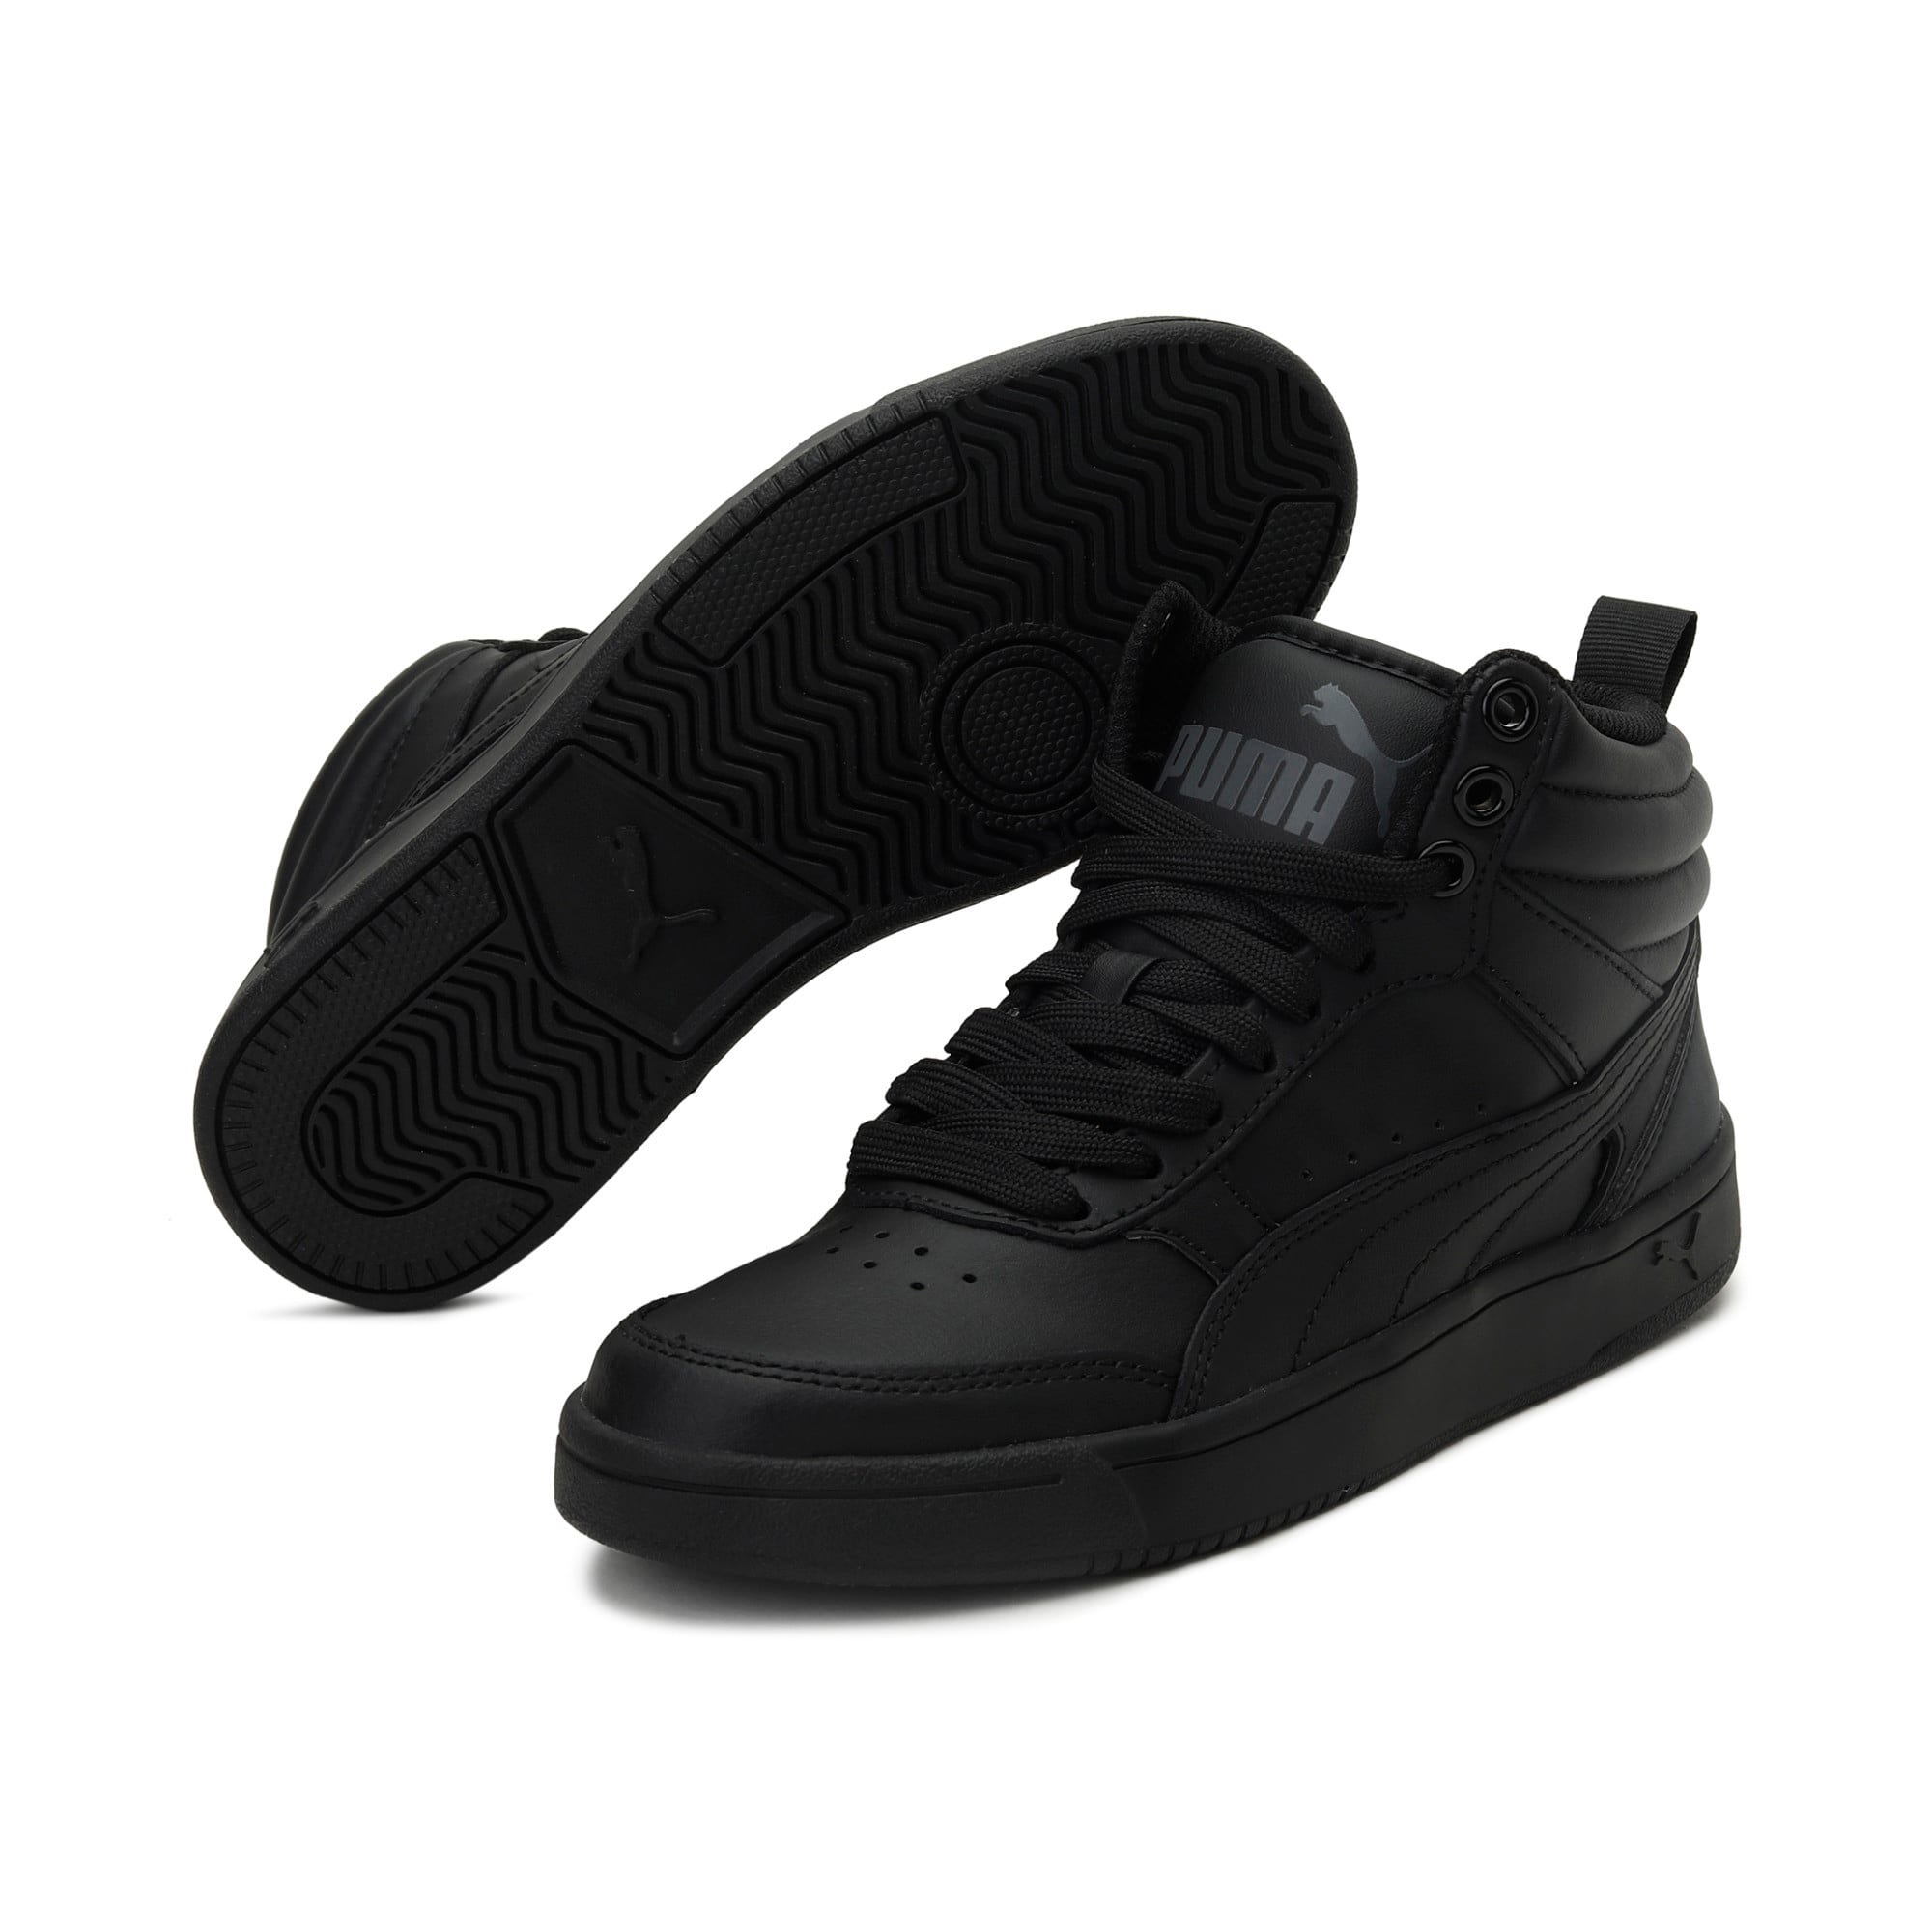 Thumbnail 3 of Rebound Street v2 Leather Kids' High Tops, Puma Black-Puma Black, medium-IND